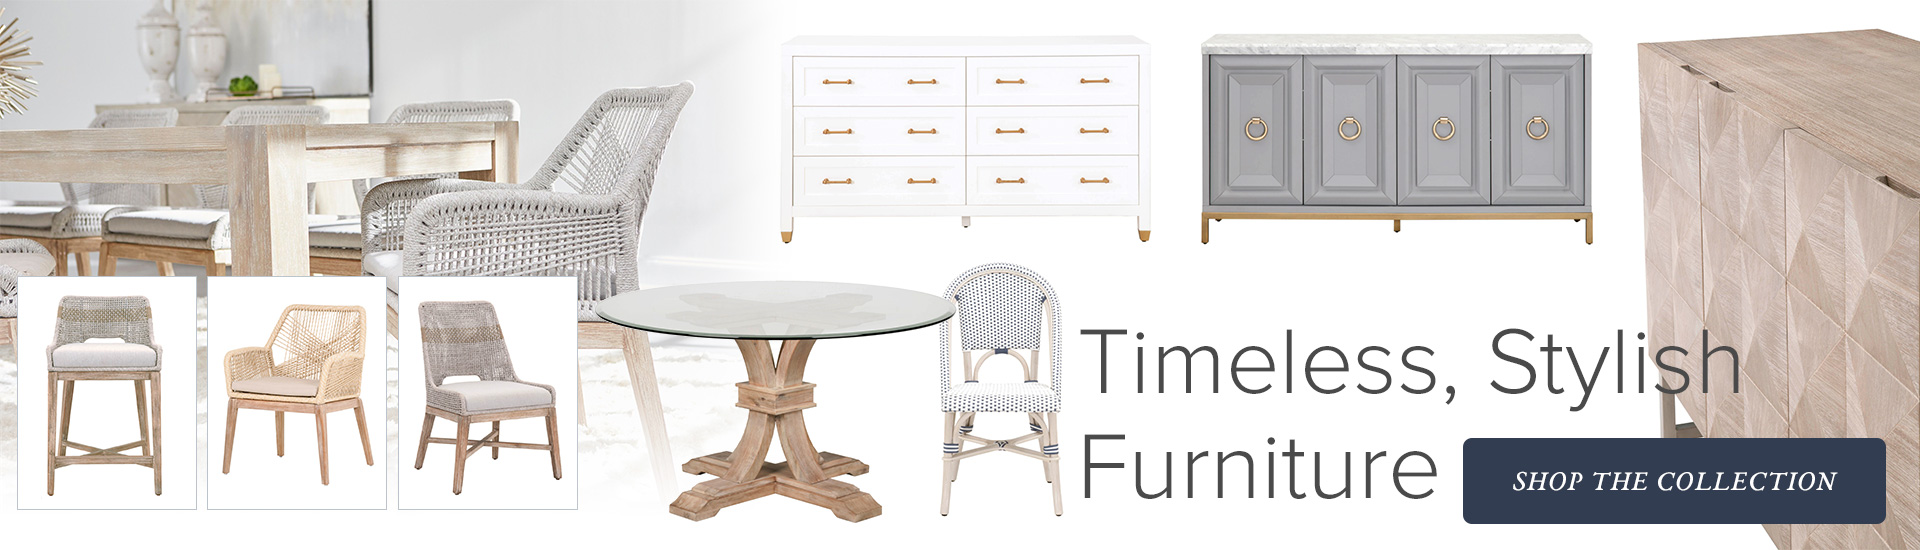 Timeless, Stylish Furniture at Belle and June